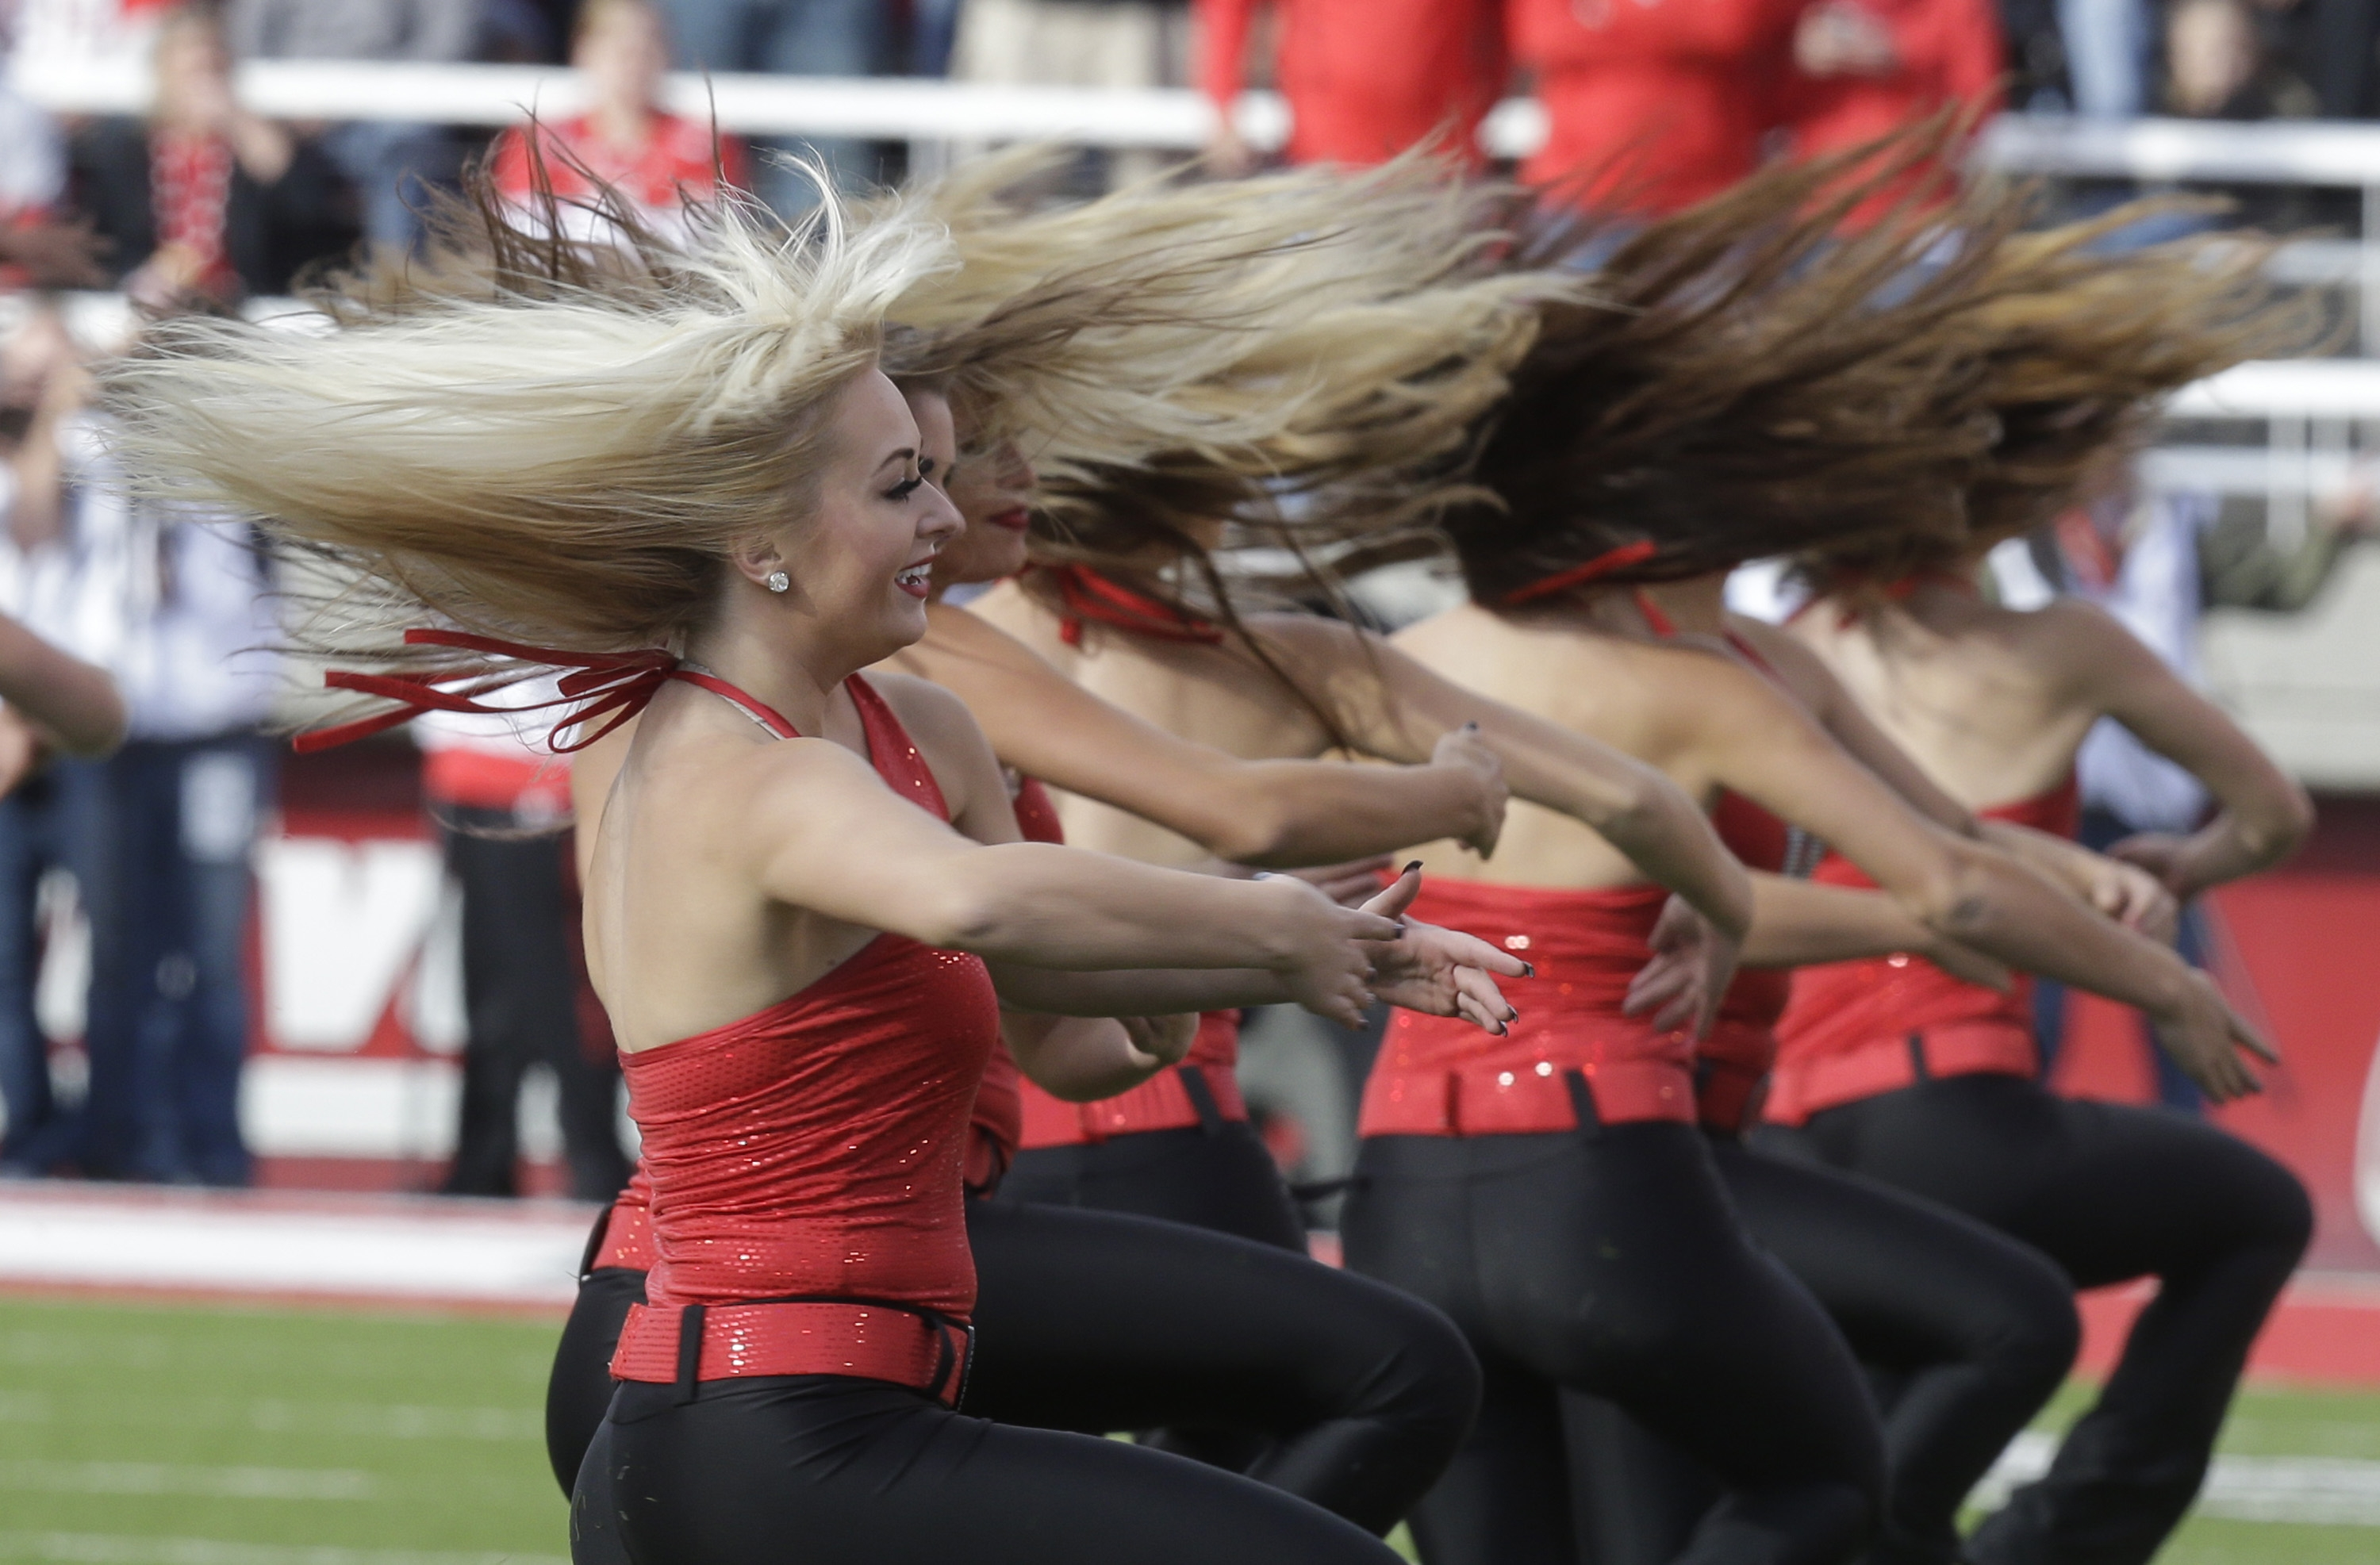 Utah cheerleading dance team perform before the start of their NCAA college football game against Stanford Saturday, Oct. 12, 2013, in Salt Lake City. (AP Photo/Rick Bowmer)